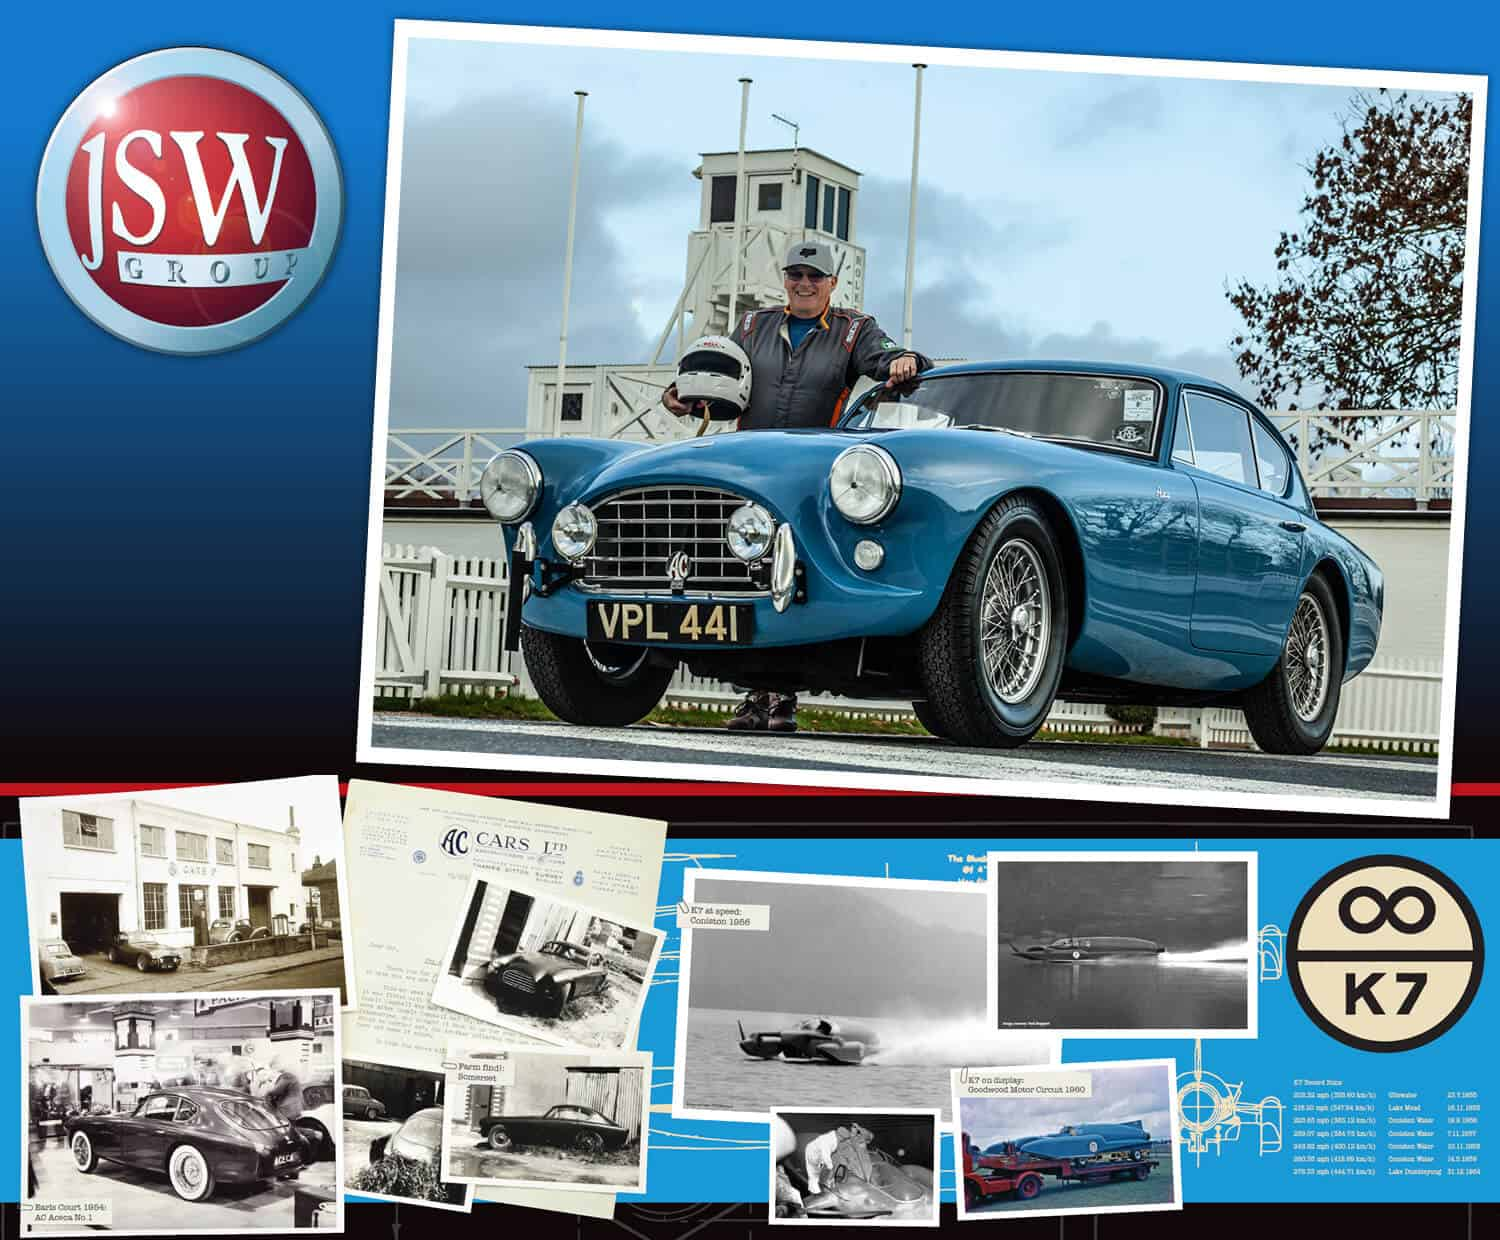 AC Bluebird at Goodwood Revival 2019 on the JSW stand 318